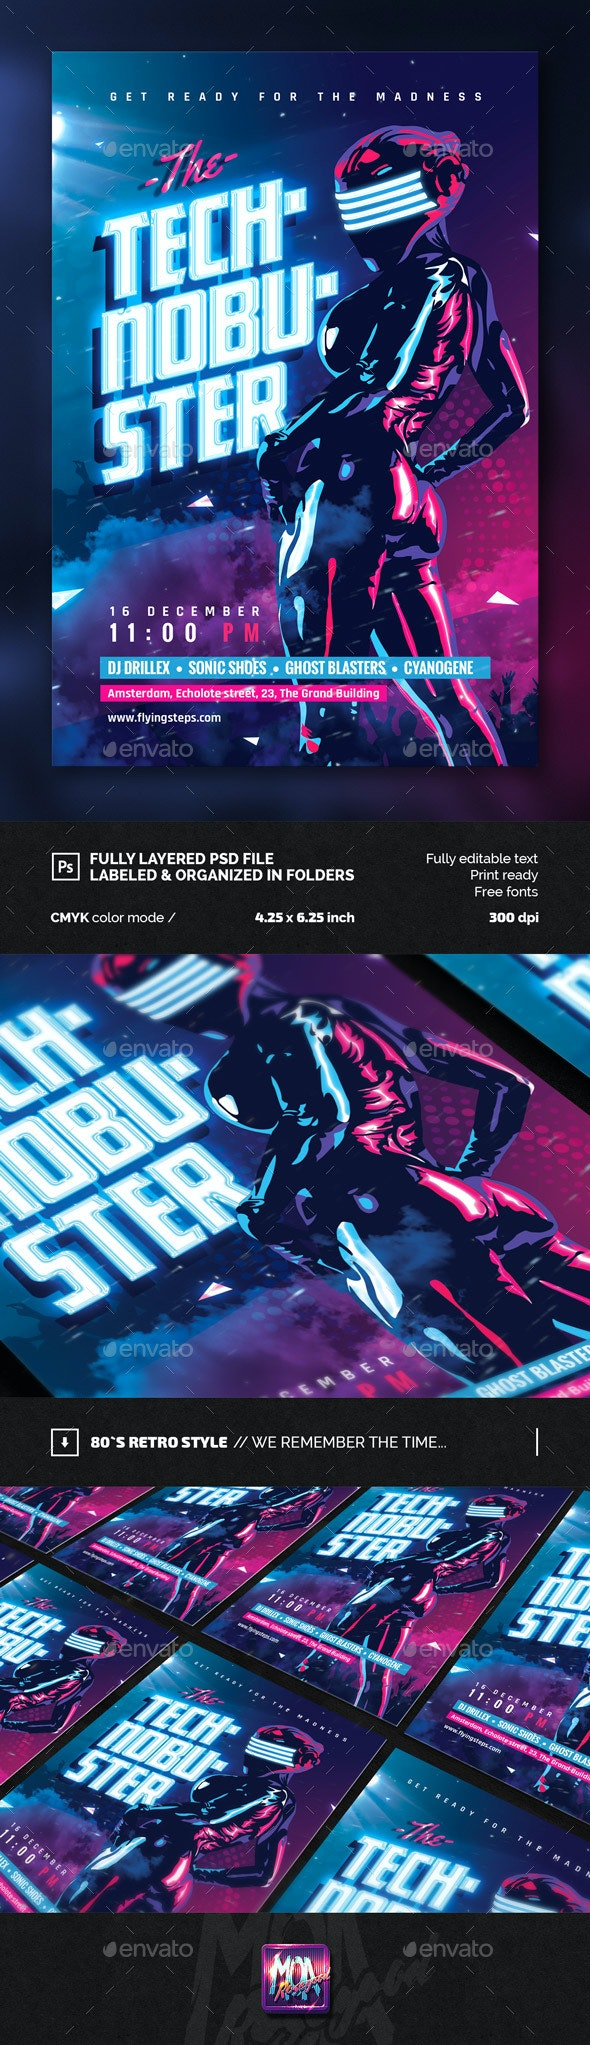 Techno Buster Party Flyer Template - Clubs & Parties Events